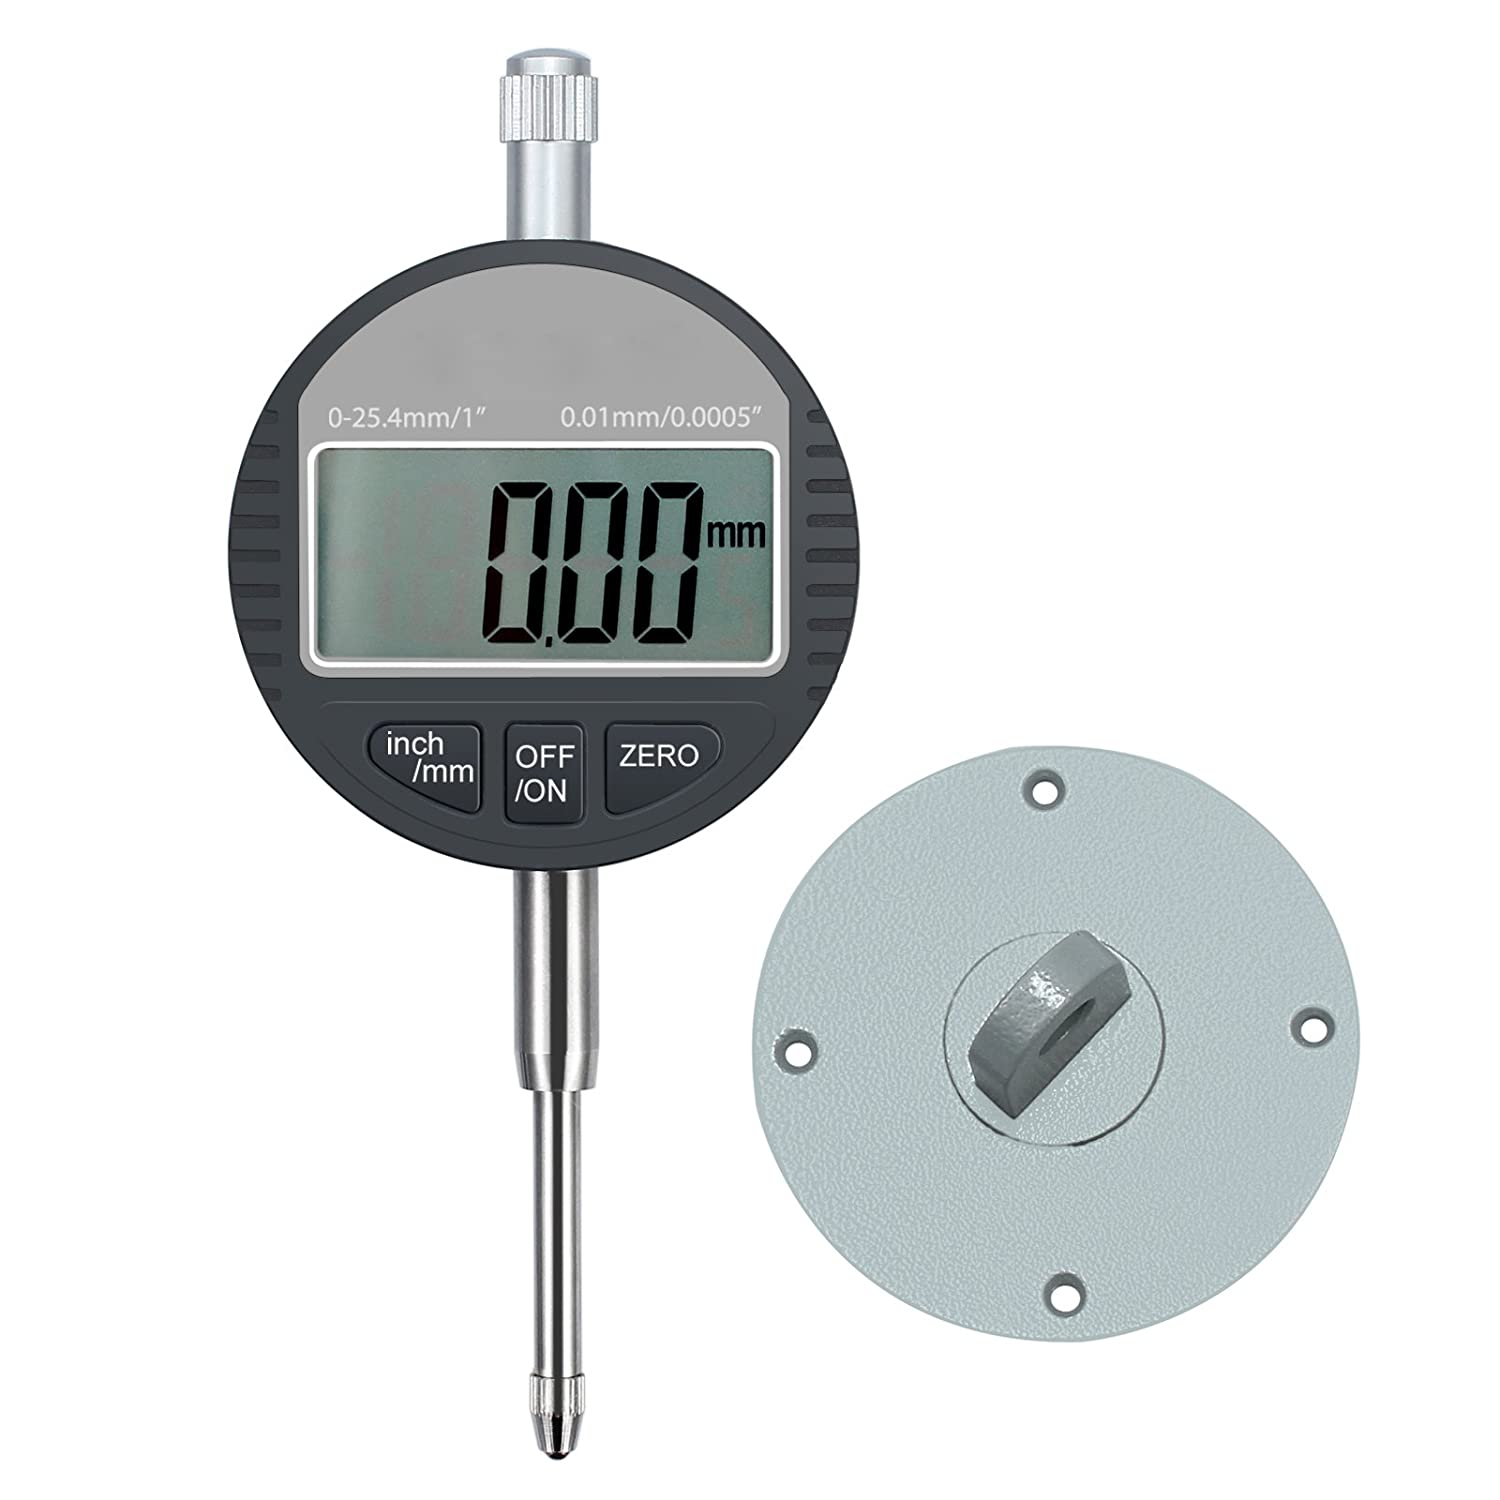 AUTOUTLET Digital Dial Indicator Sonde Digital Cadran Indicateur 0,01 mm//0 cm Gamme DTI Jauge Cadran Test Indicateur 25,4 mm//2,5 cm haute pr/écision de mesure industrielle des voyants